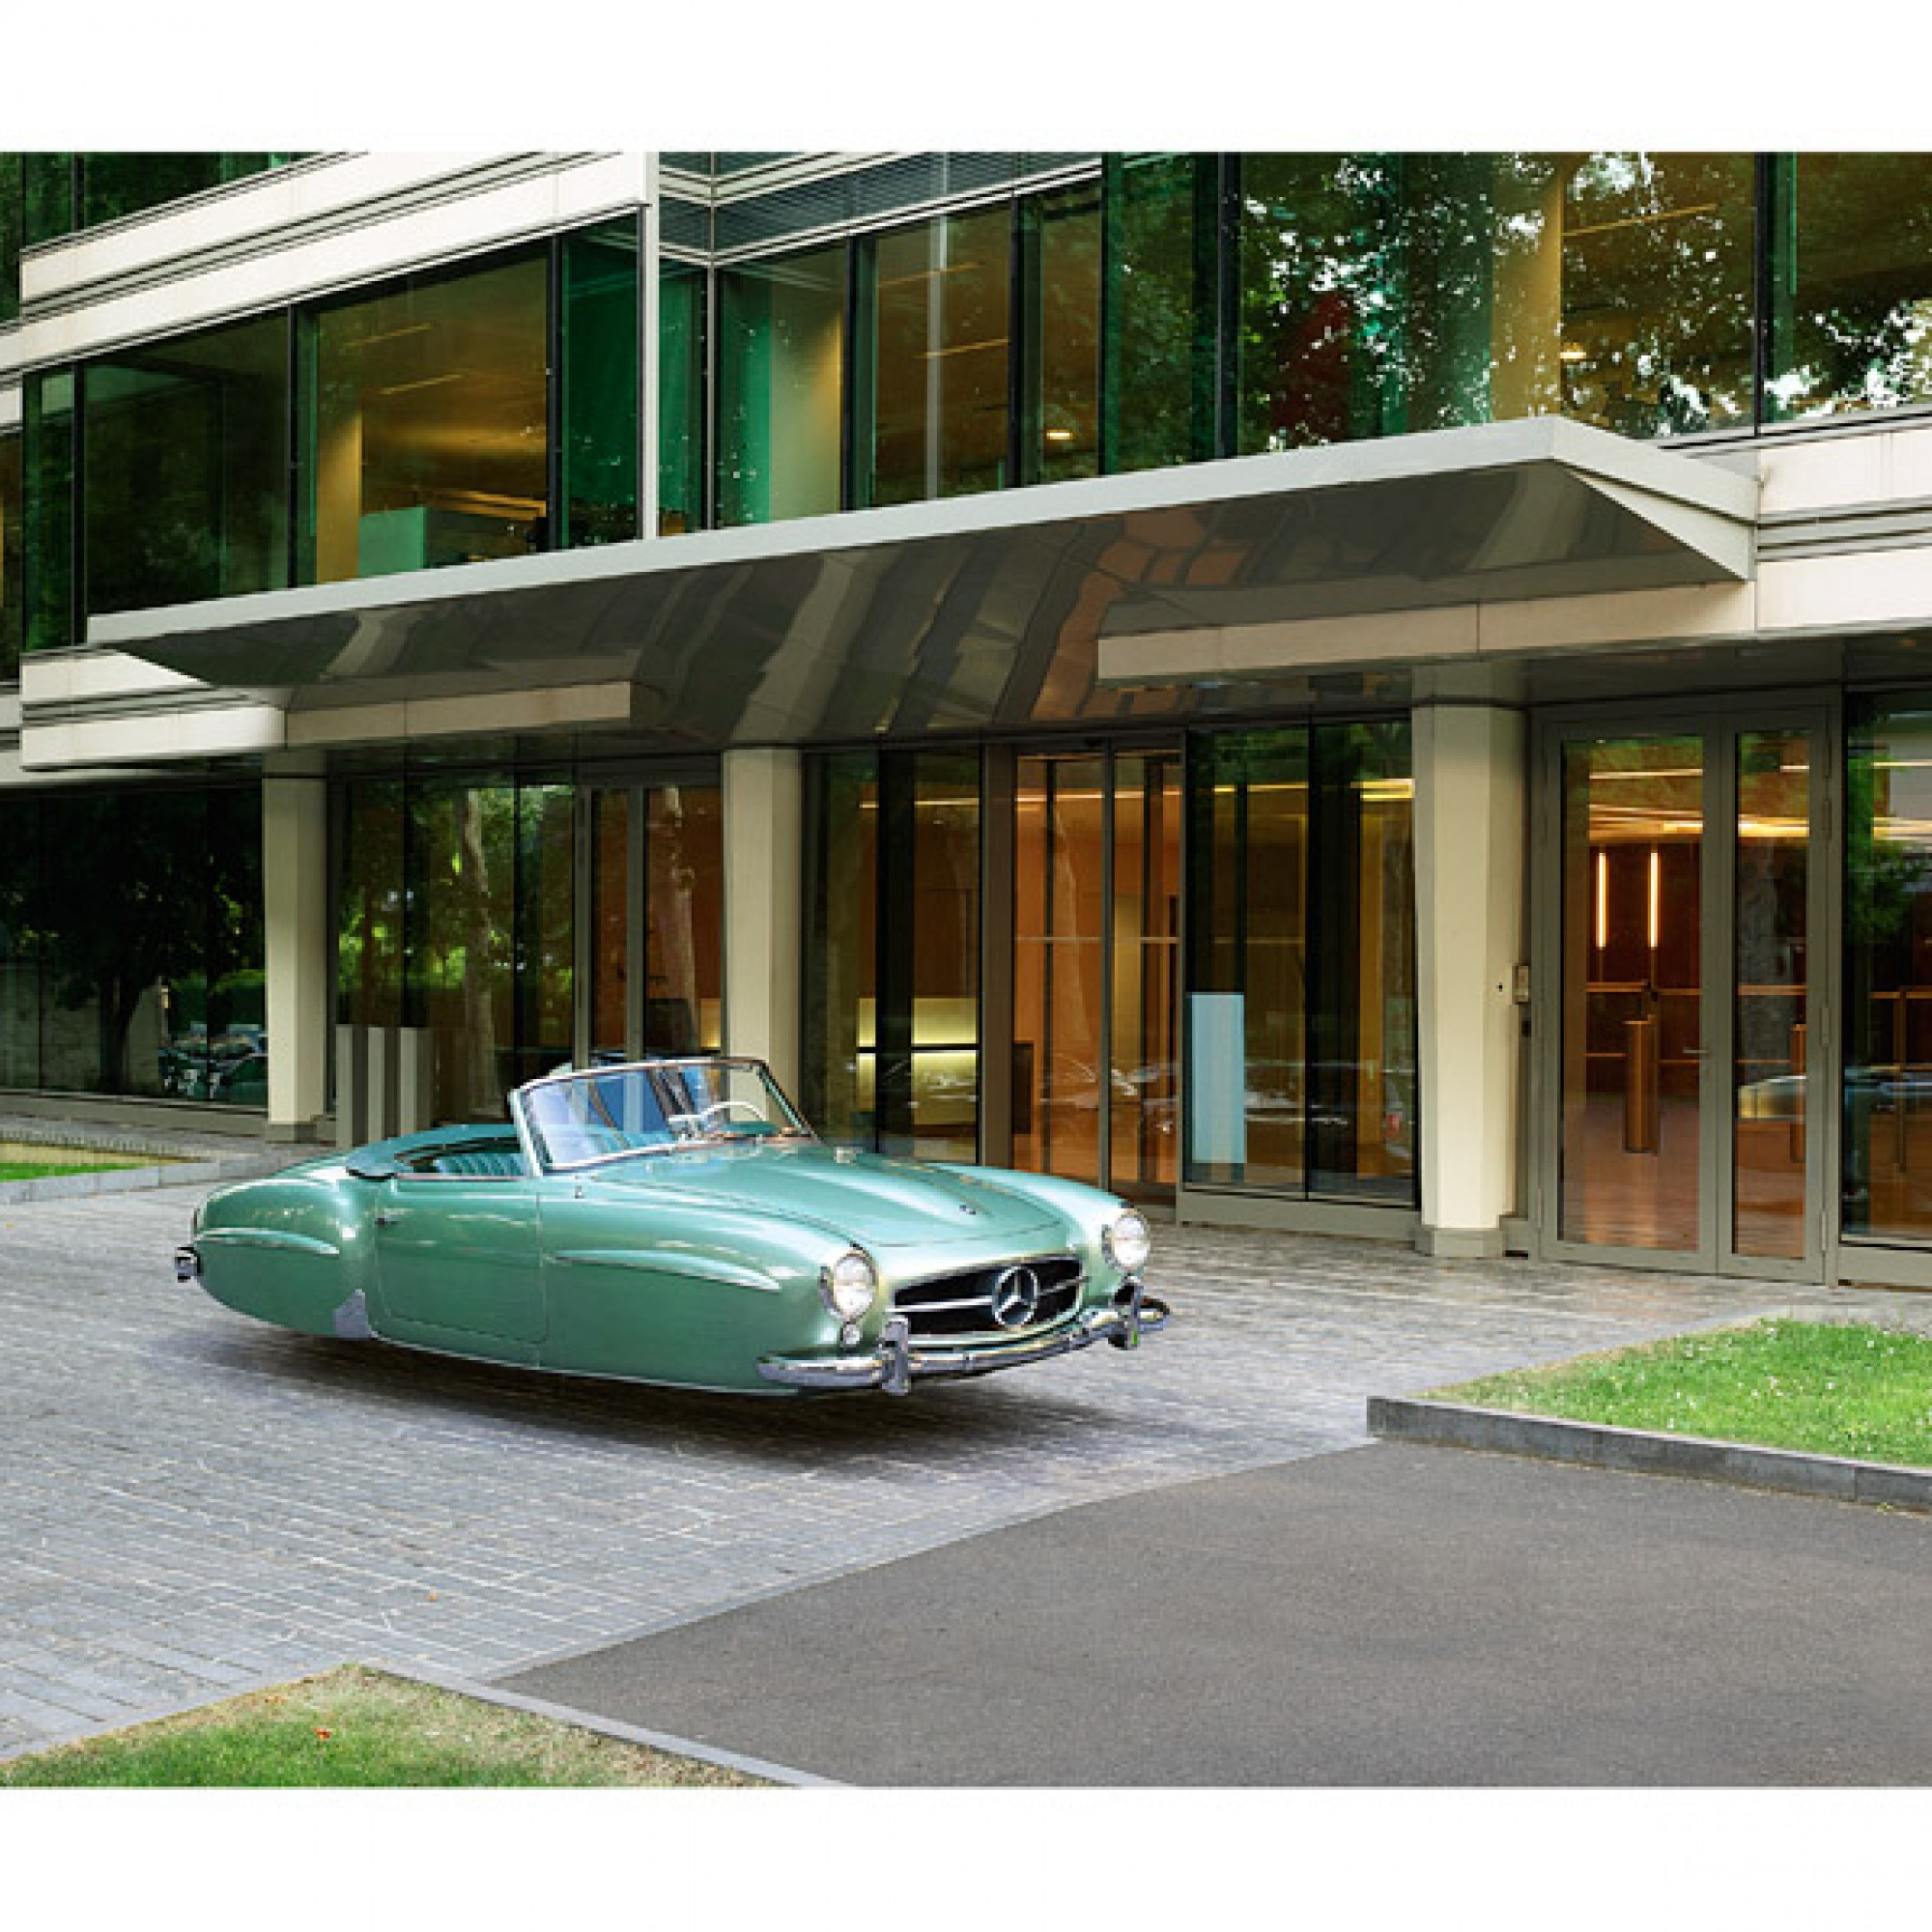 Mercedes 190 SL. (Renaud Marion / M.A.D. Gallery / zvg)